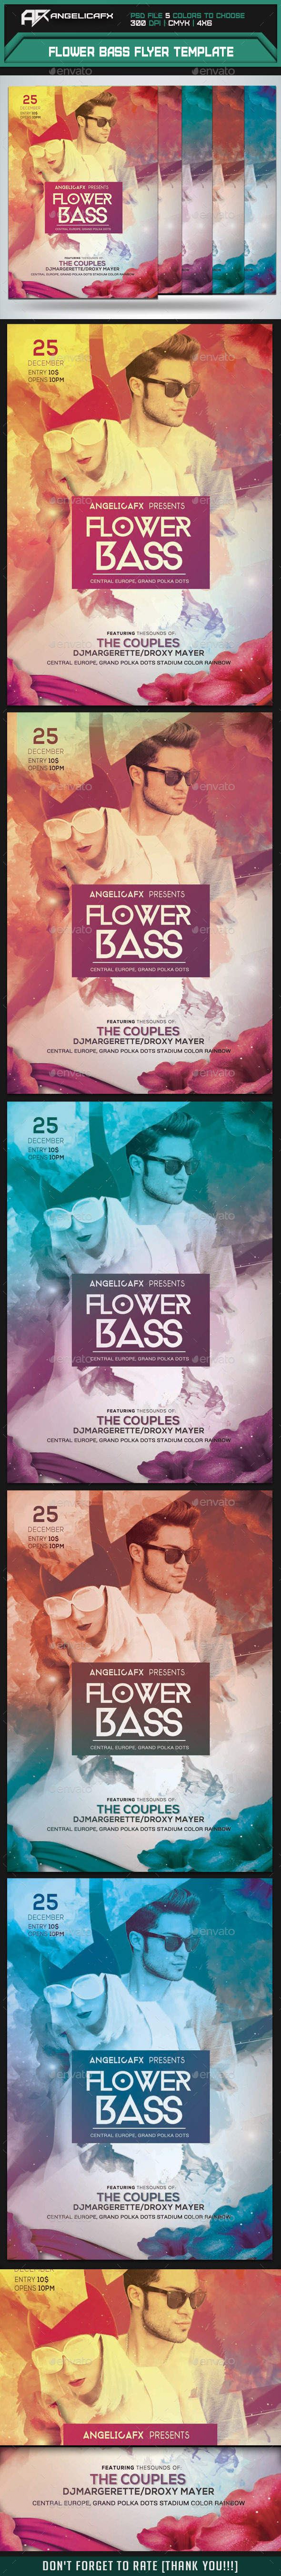 Flower Bass Flyer Template - Flyers Print Templates